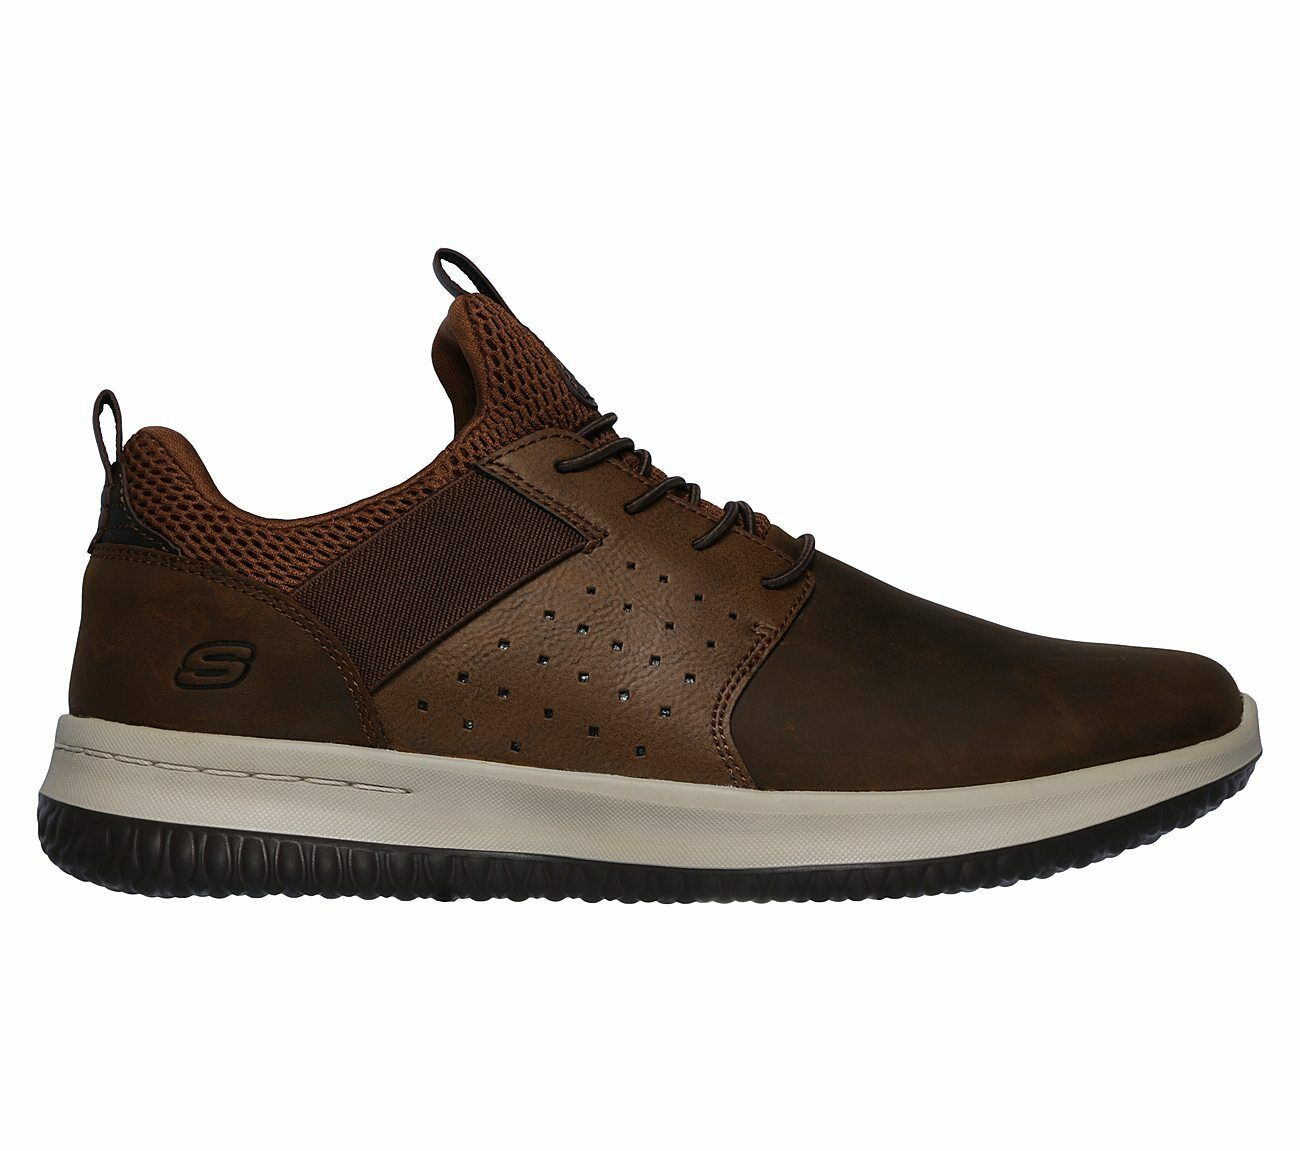 Skechers Delson - Axton Trainers Leather Elastic Memory Foam schuhe Mens 65870